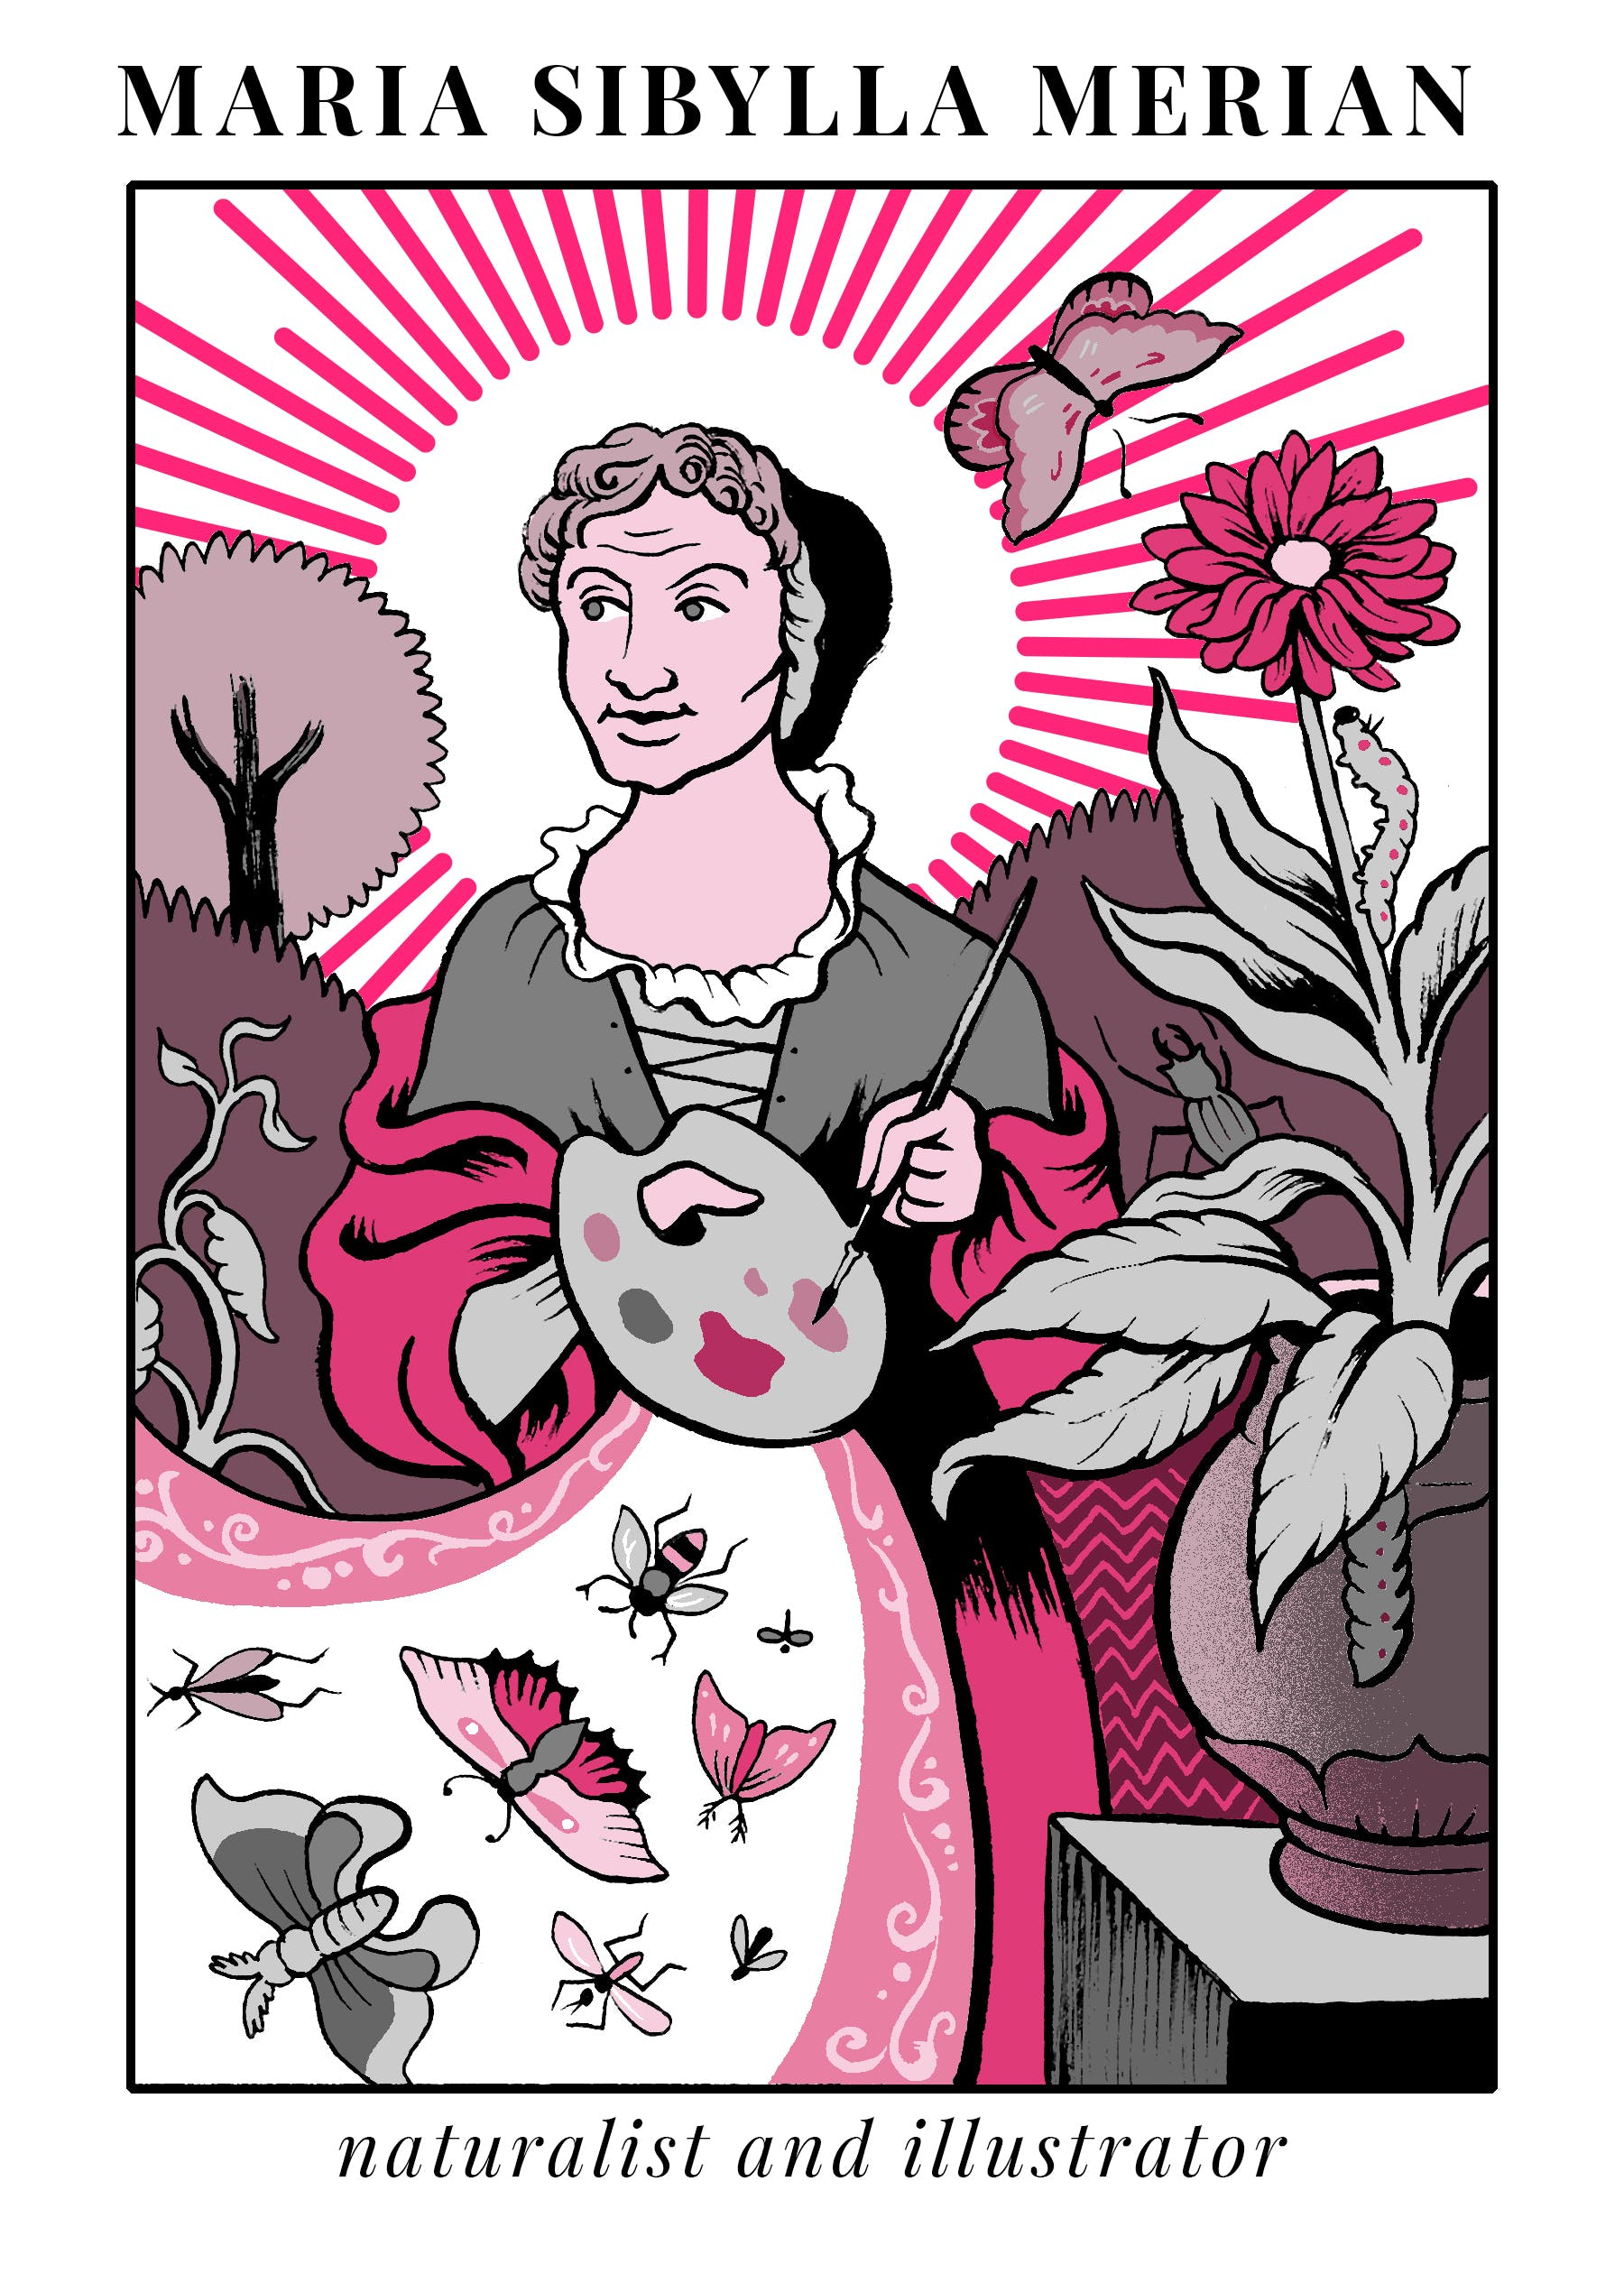 Illustration of Maria Sibylla Merian from Massive Science Tarot deck